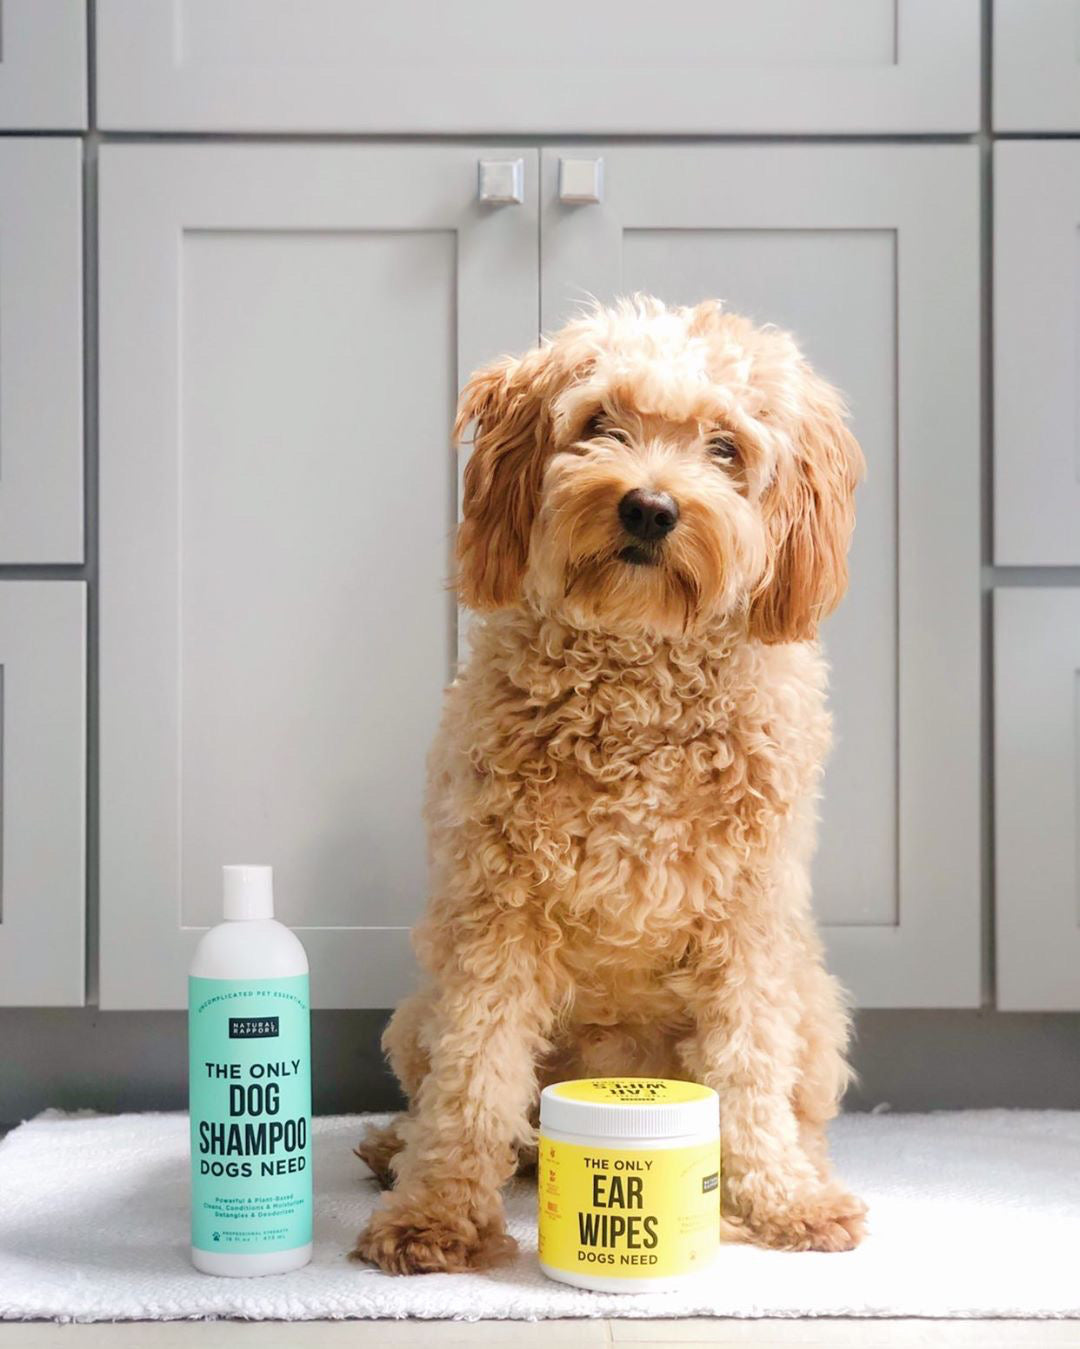 Clean dog with dog shampoo and ear wipes by Natural Rapport - Photo Credit @mochiwilbur